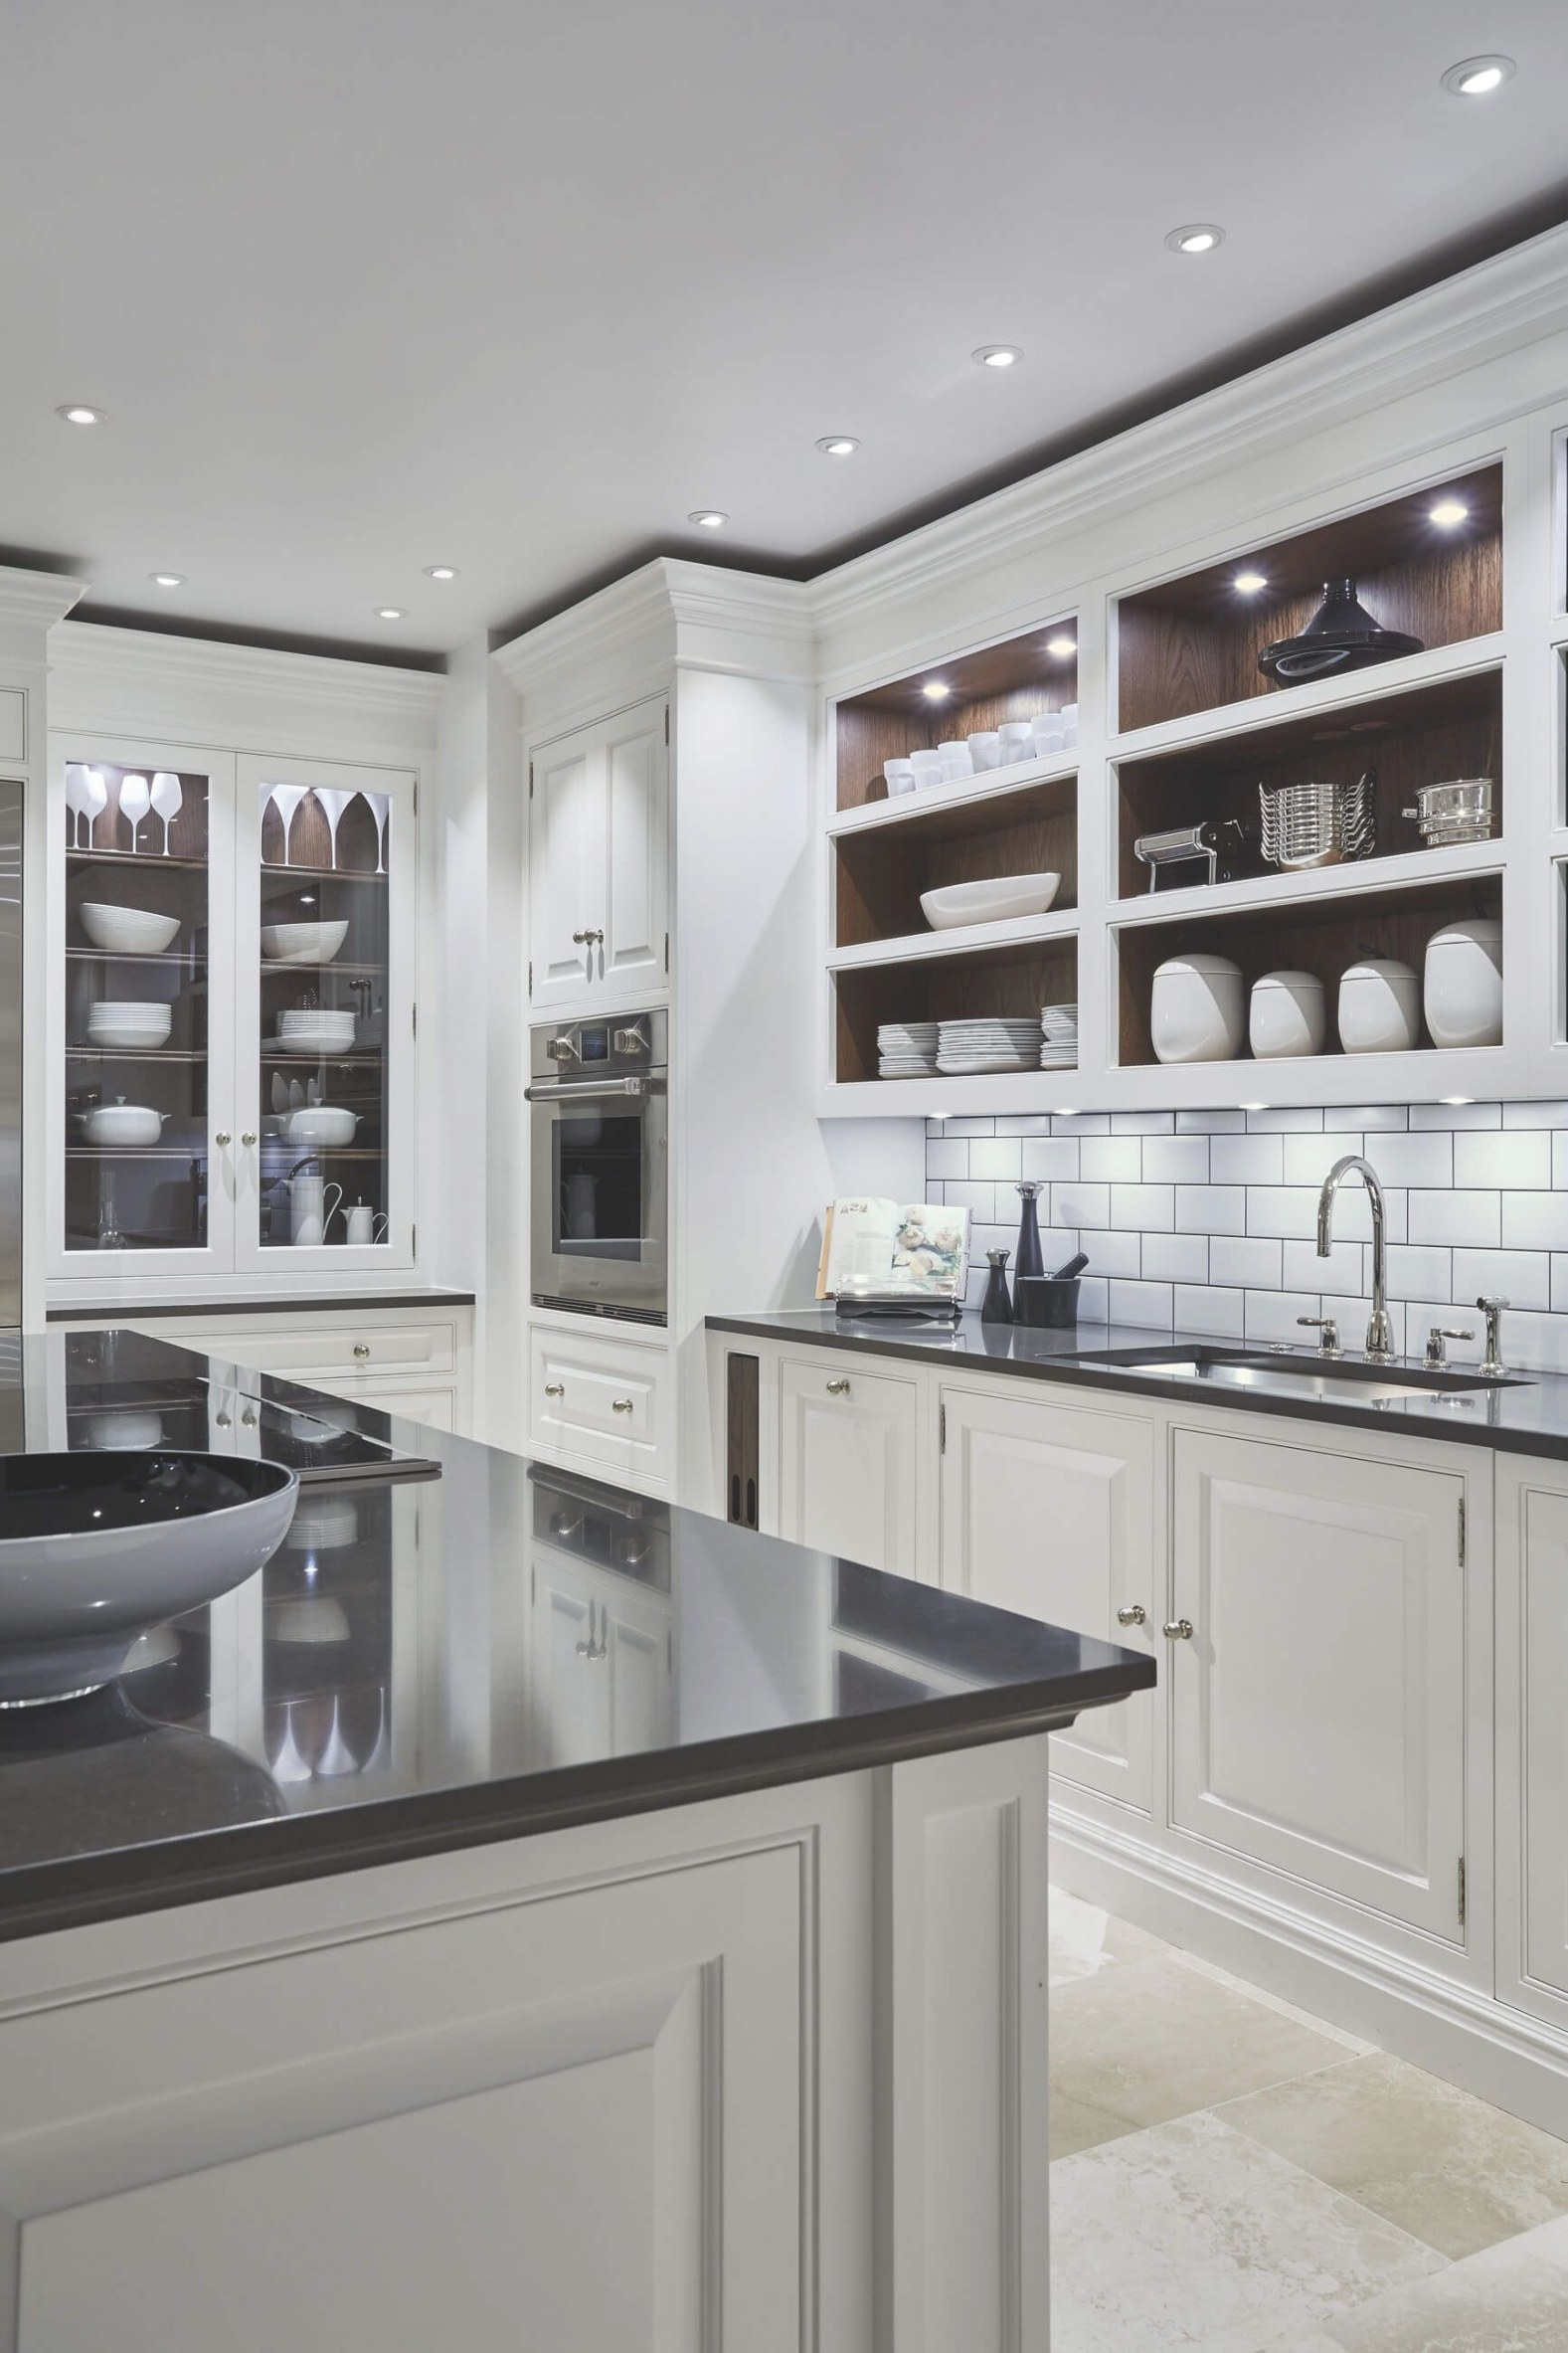 Grand Kitchen In 2020 | Luxury Kitchens, Grand Kitchen within State Of The Art Kitchen